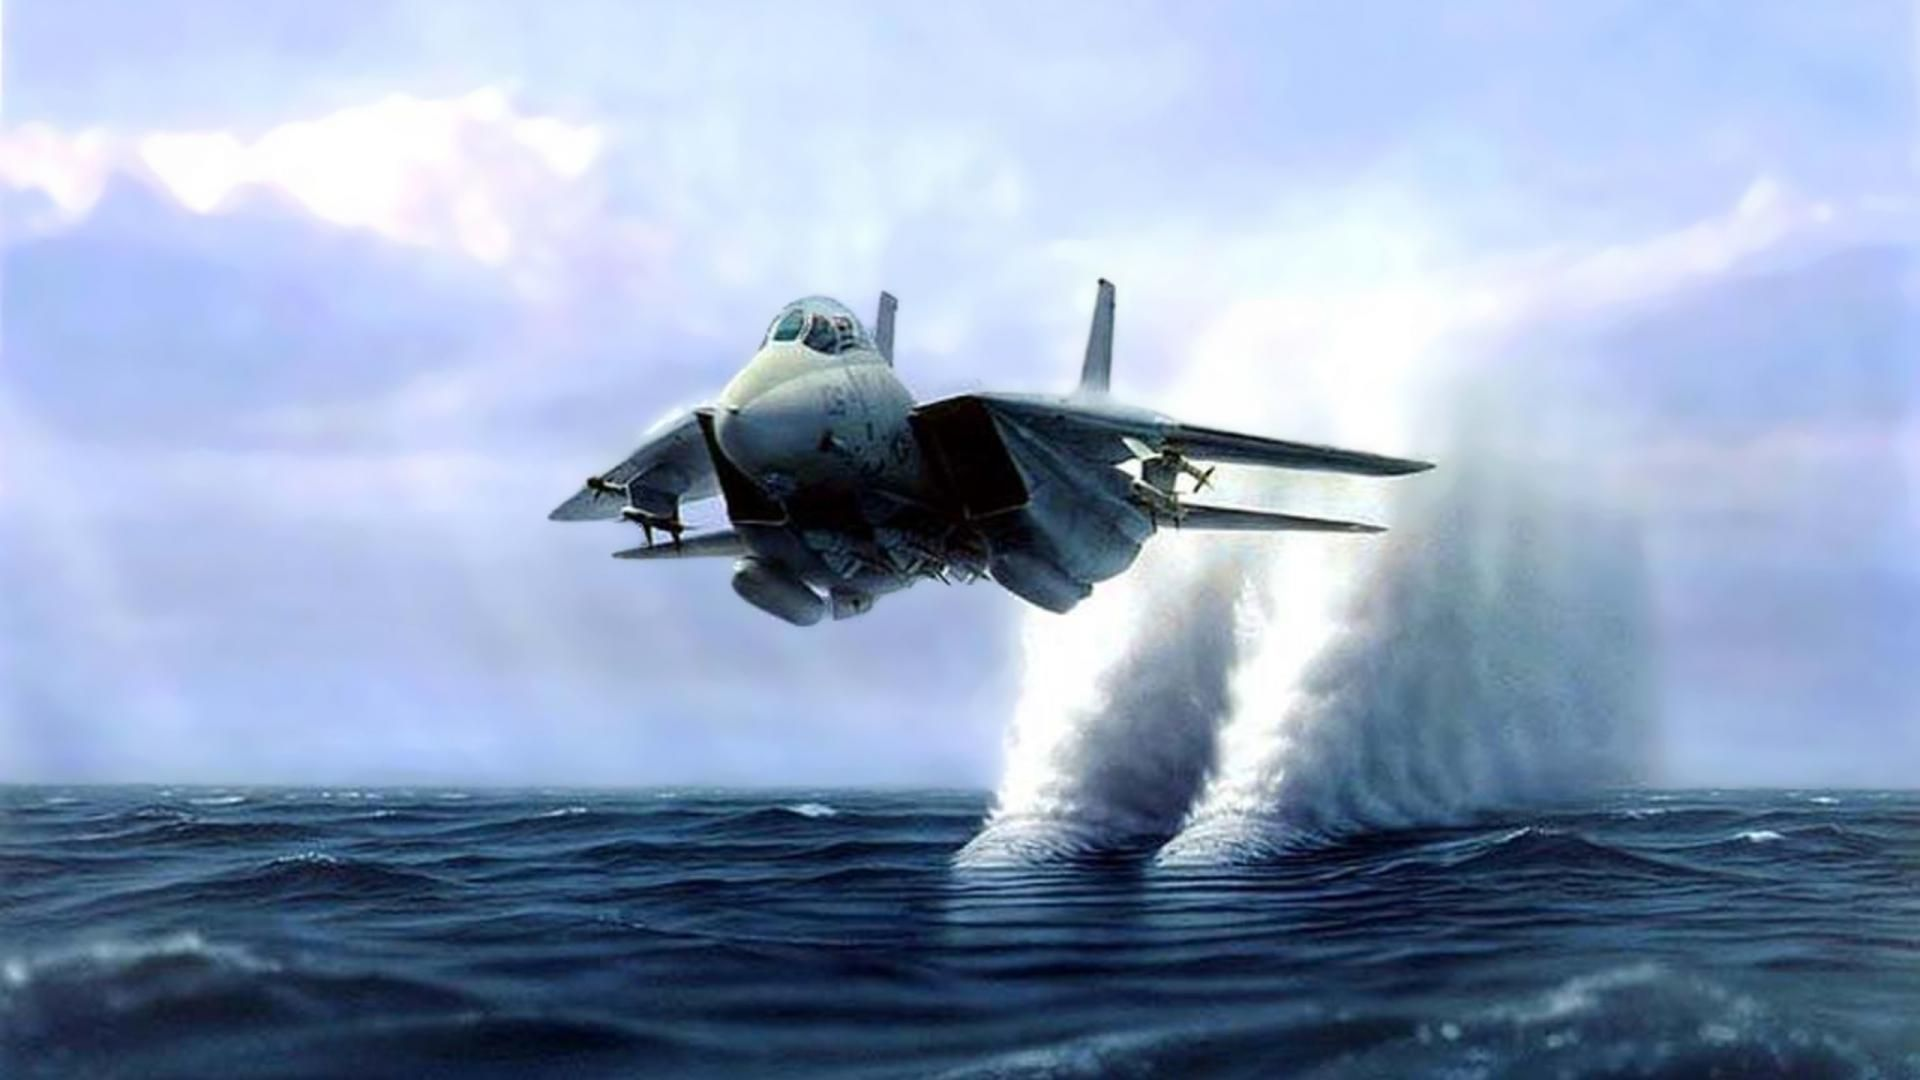 3d Jet Fighter Live Wallpaper Android Apps On Google Play Fighter Jets Fighter Planes Fighter Aircraft